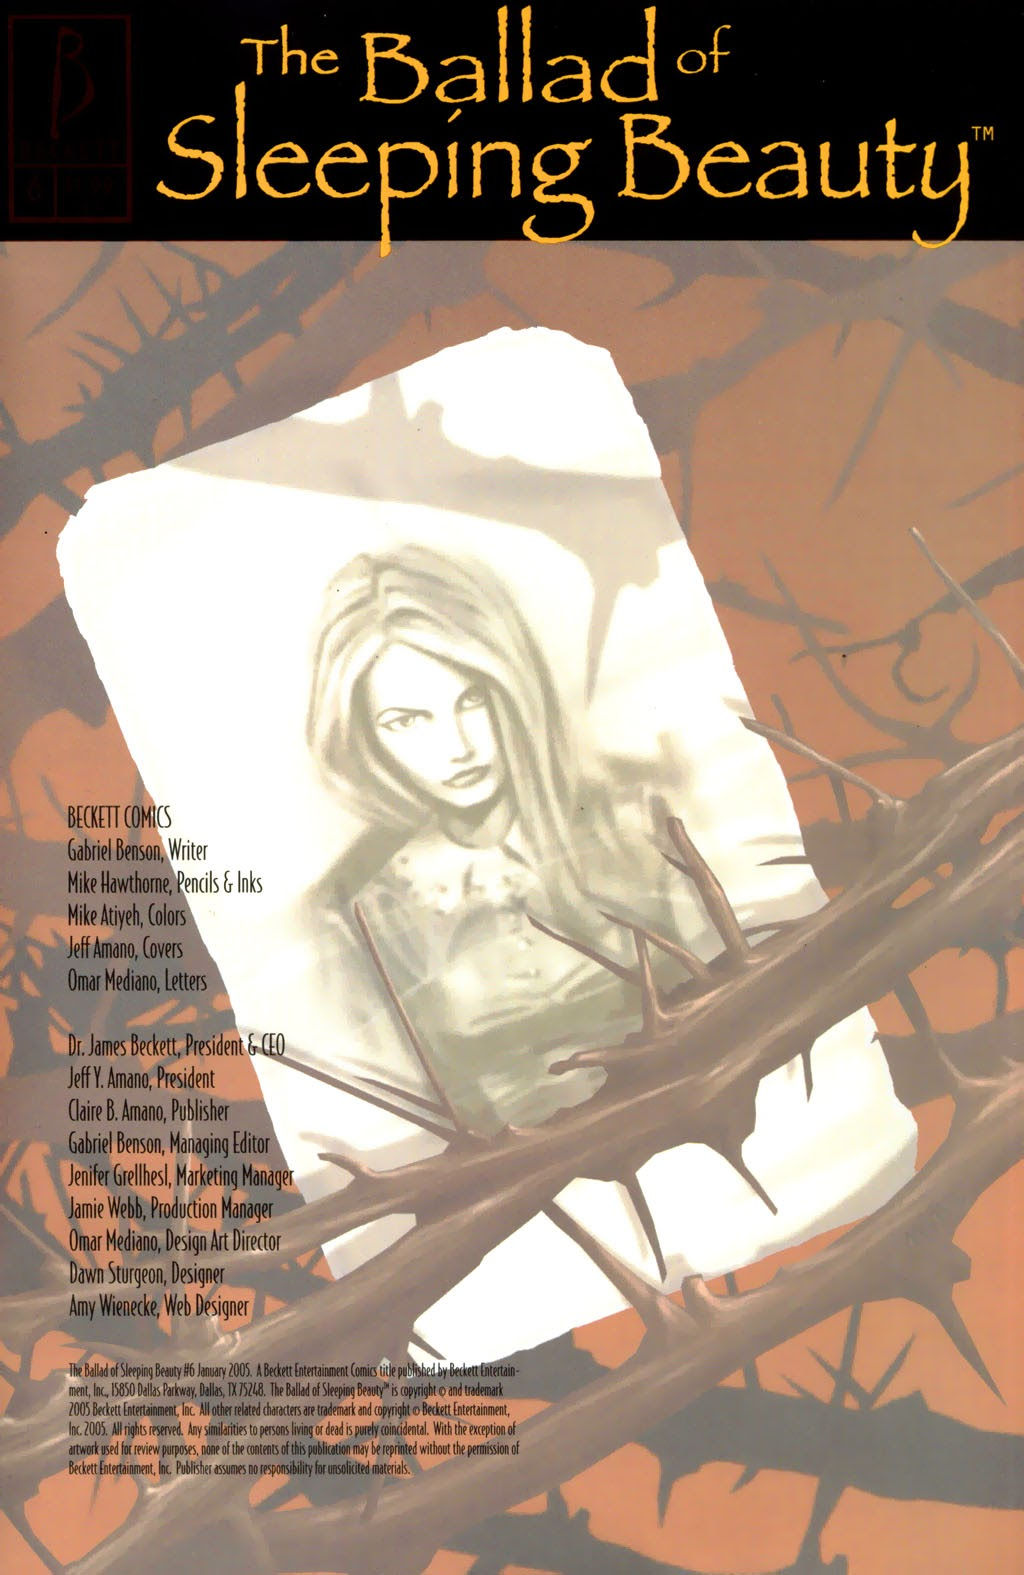 Read online The Ballad of Sleeping Beauty comic -  Issue #6 - 35